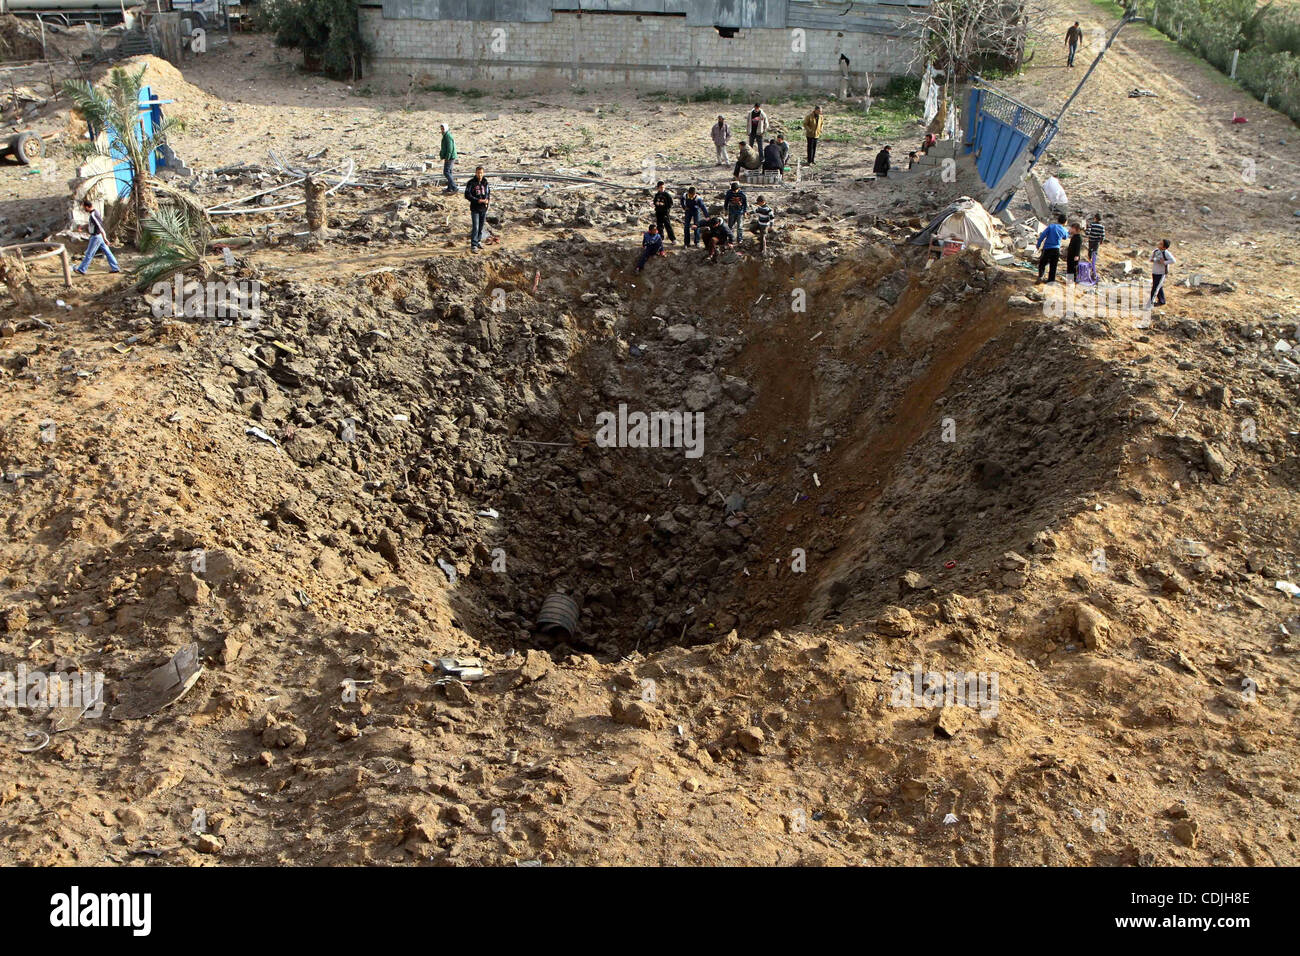 Palestinians stand next to a crater left after a missile fired from an Israeli warplane hit Nusairat refugee camp, Stock Photo